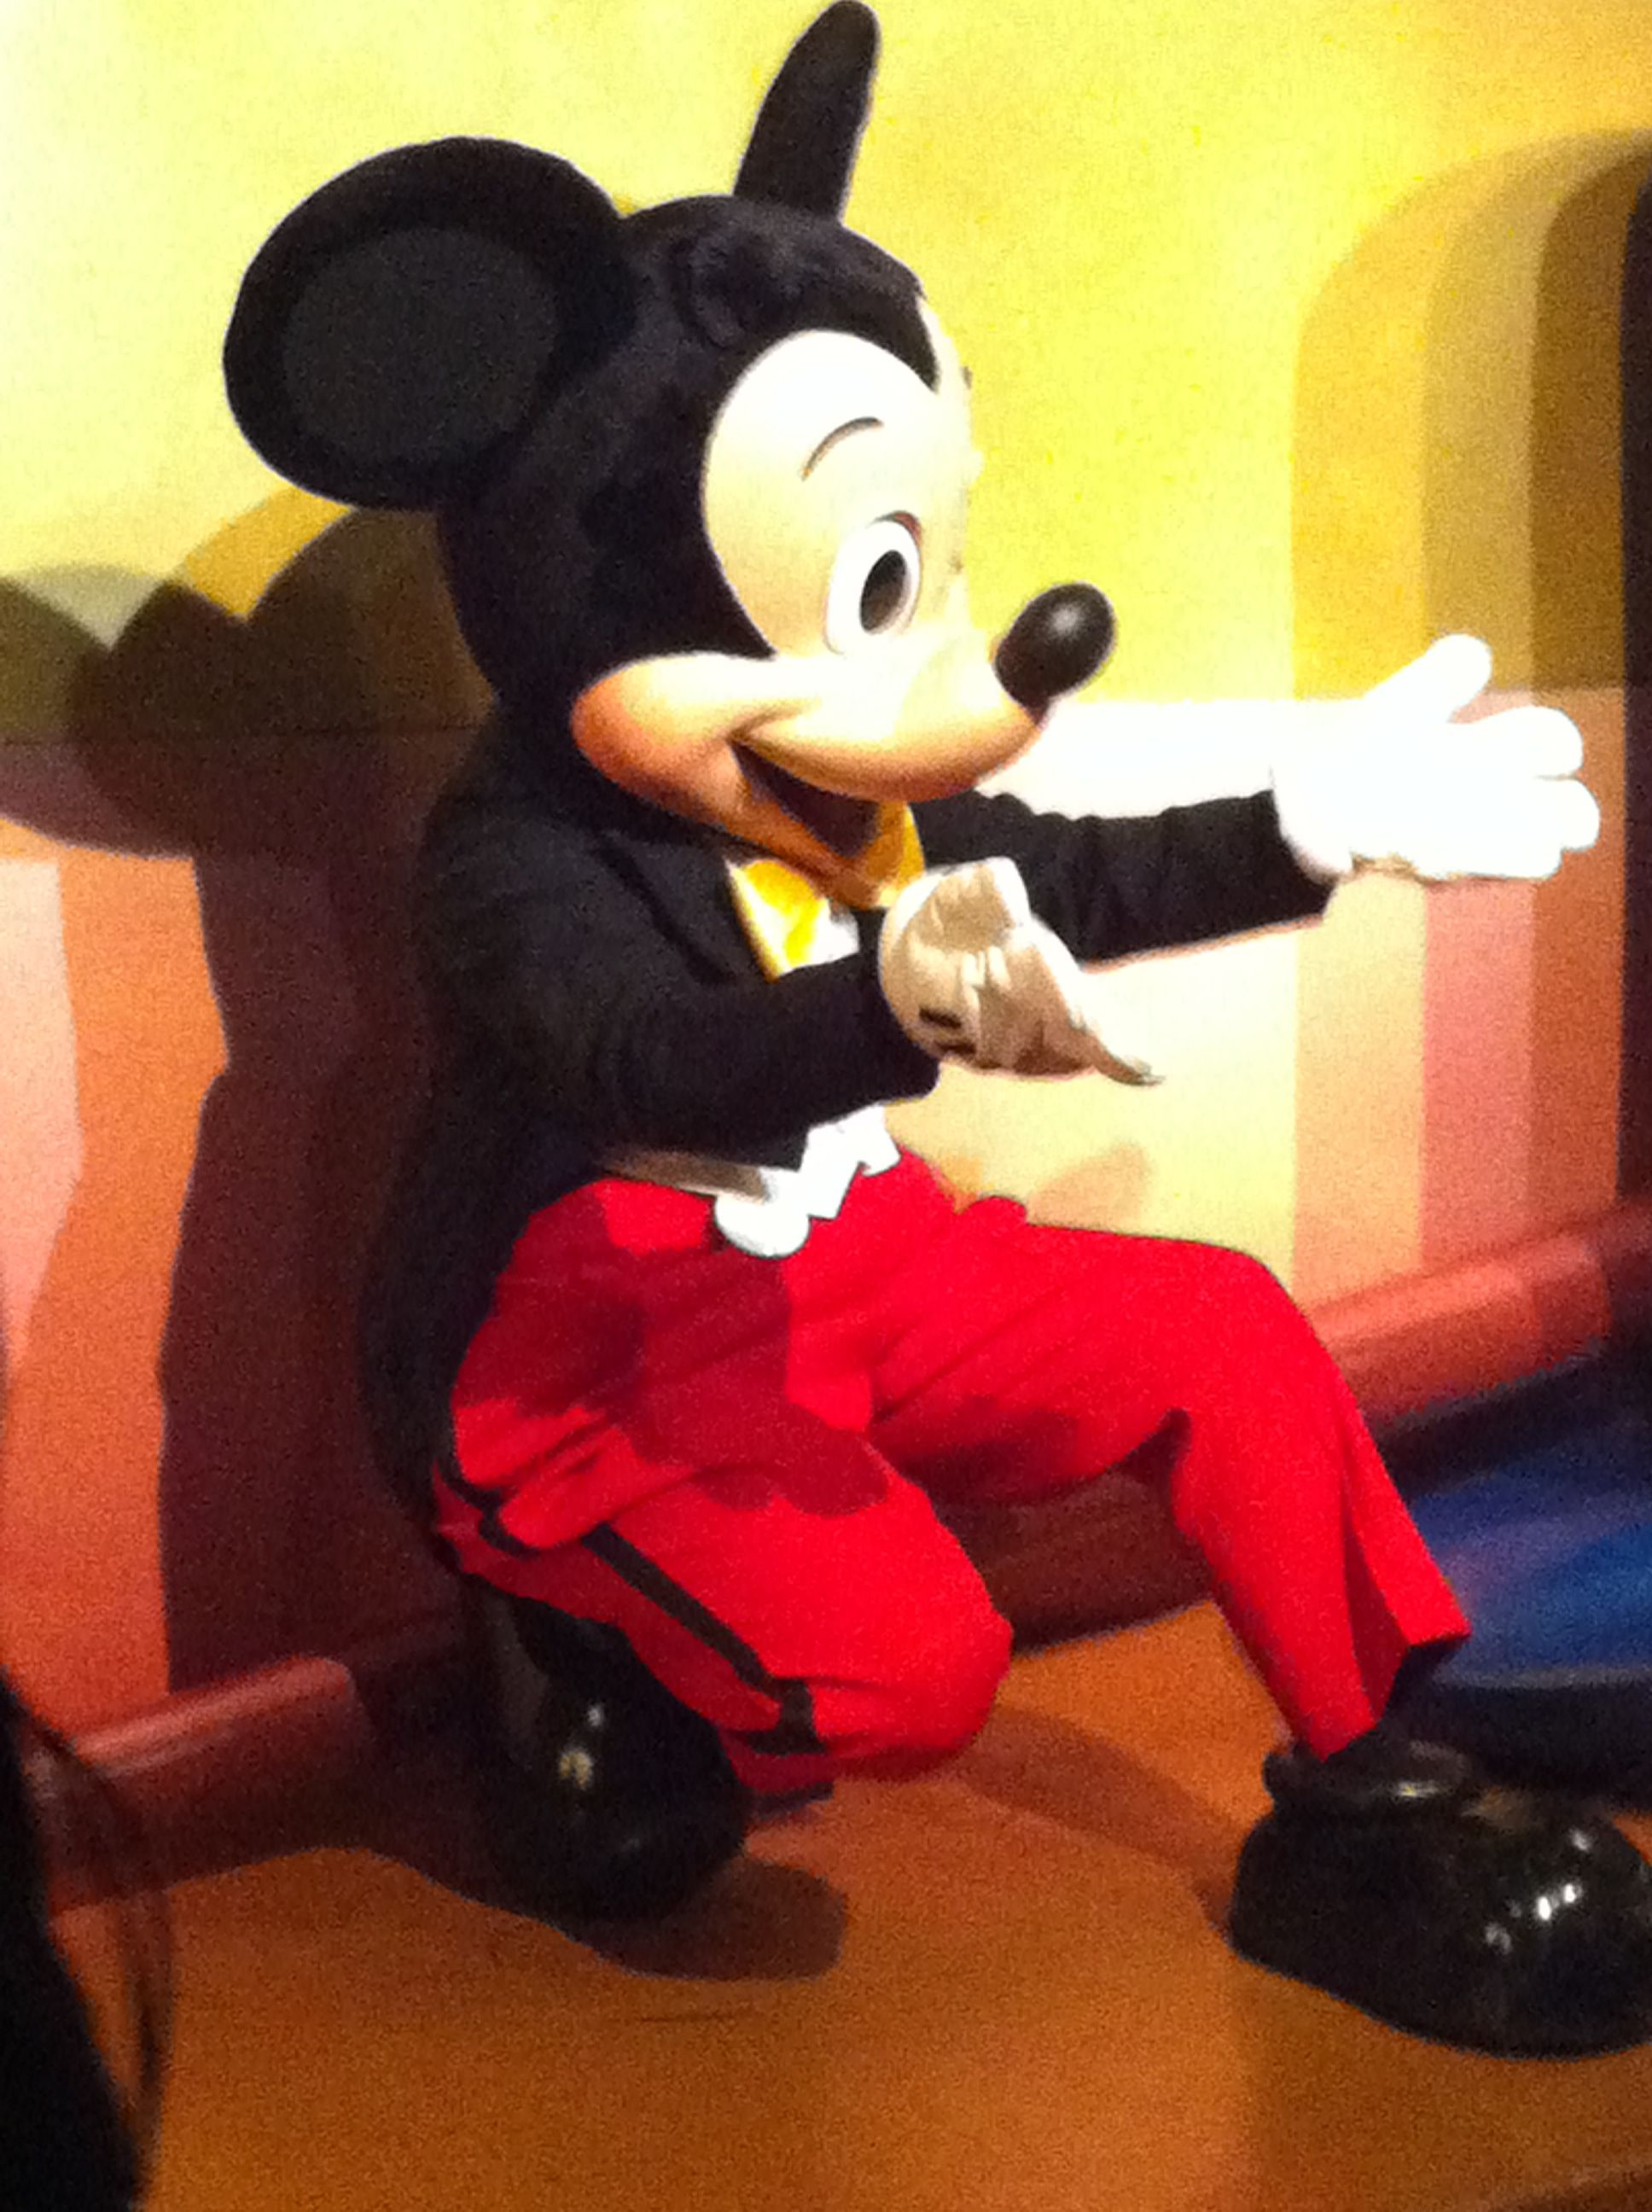 11/19/12 Mickey Mouse